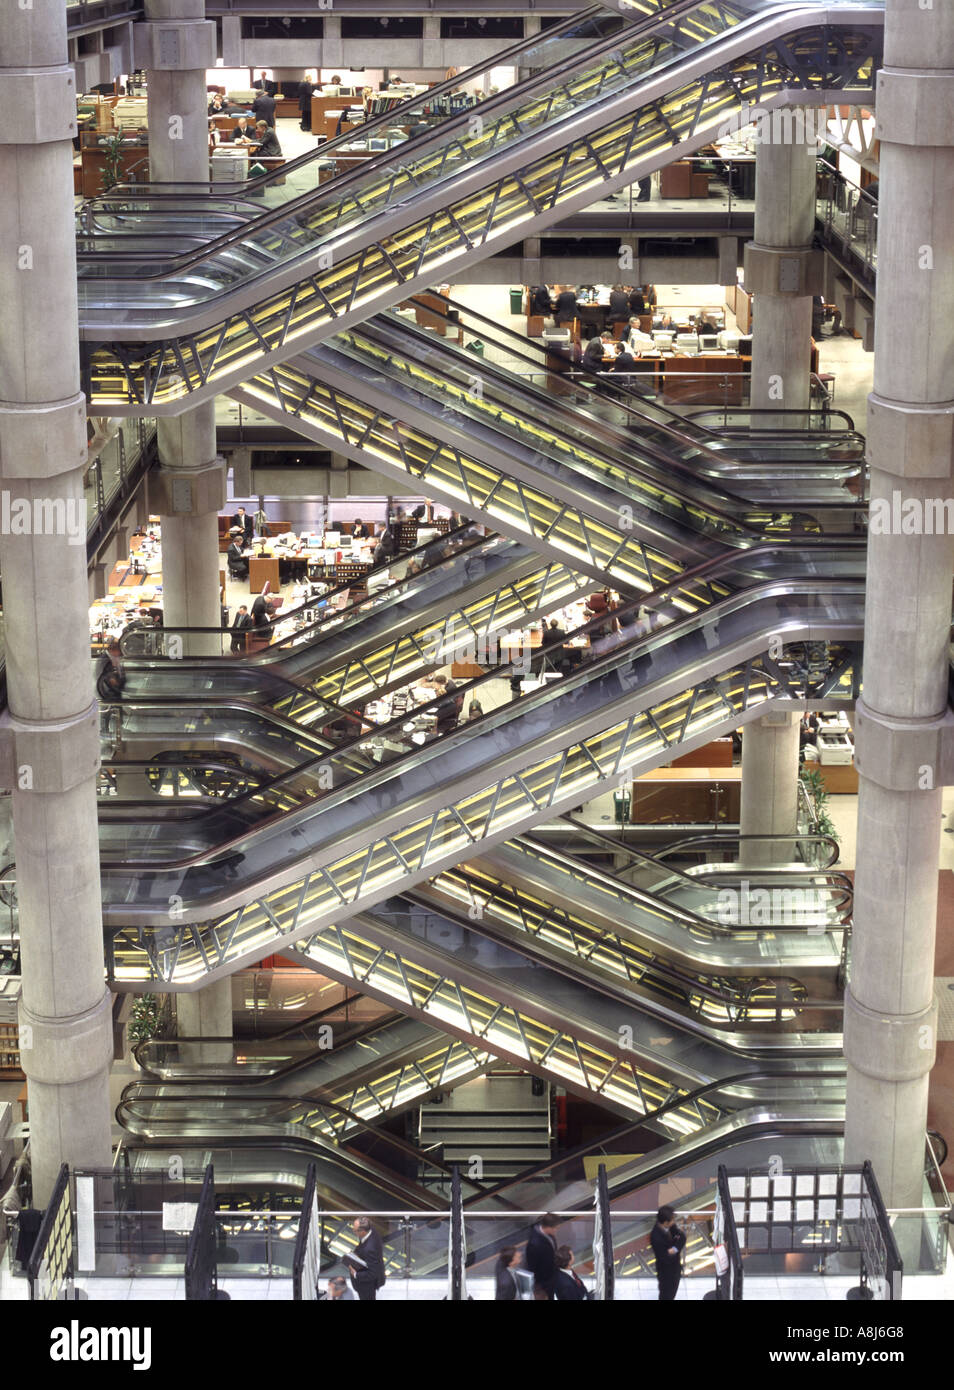 Lloyds of London City of London interior view of escalator system in midst of open plan office workspaces England UK - Stock Image